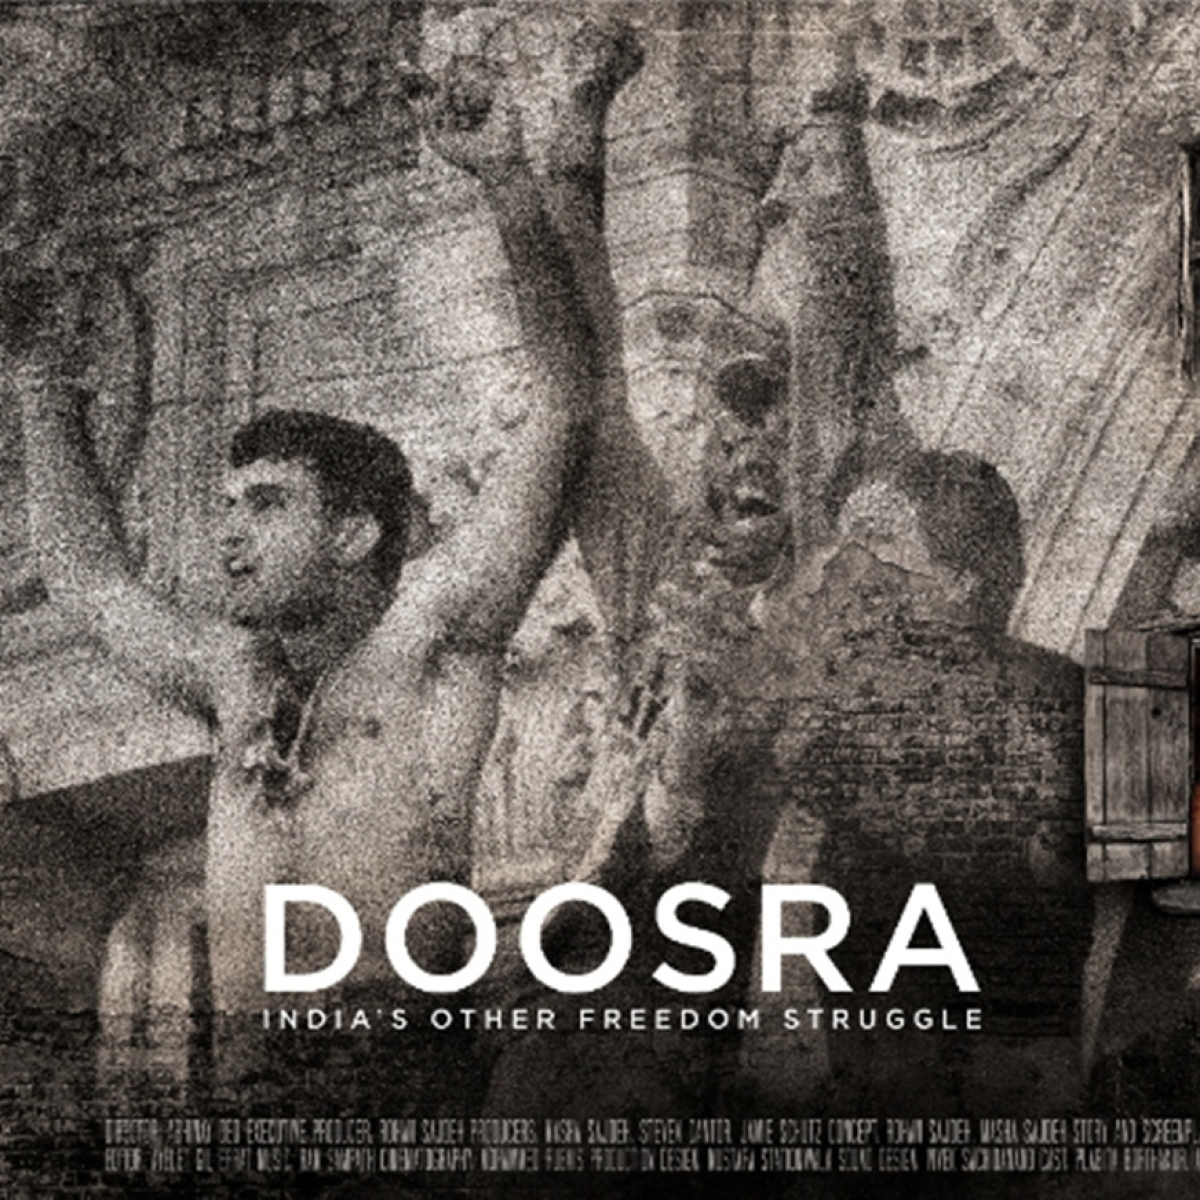 Abhinay Deo's next project 'Doosra' features Sourav Ganguly's iconic T-shirt removal